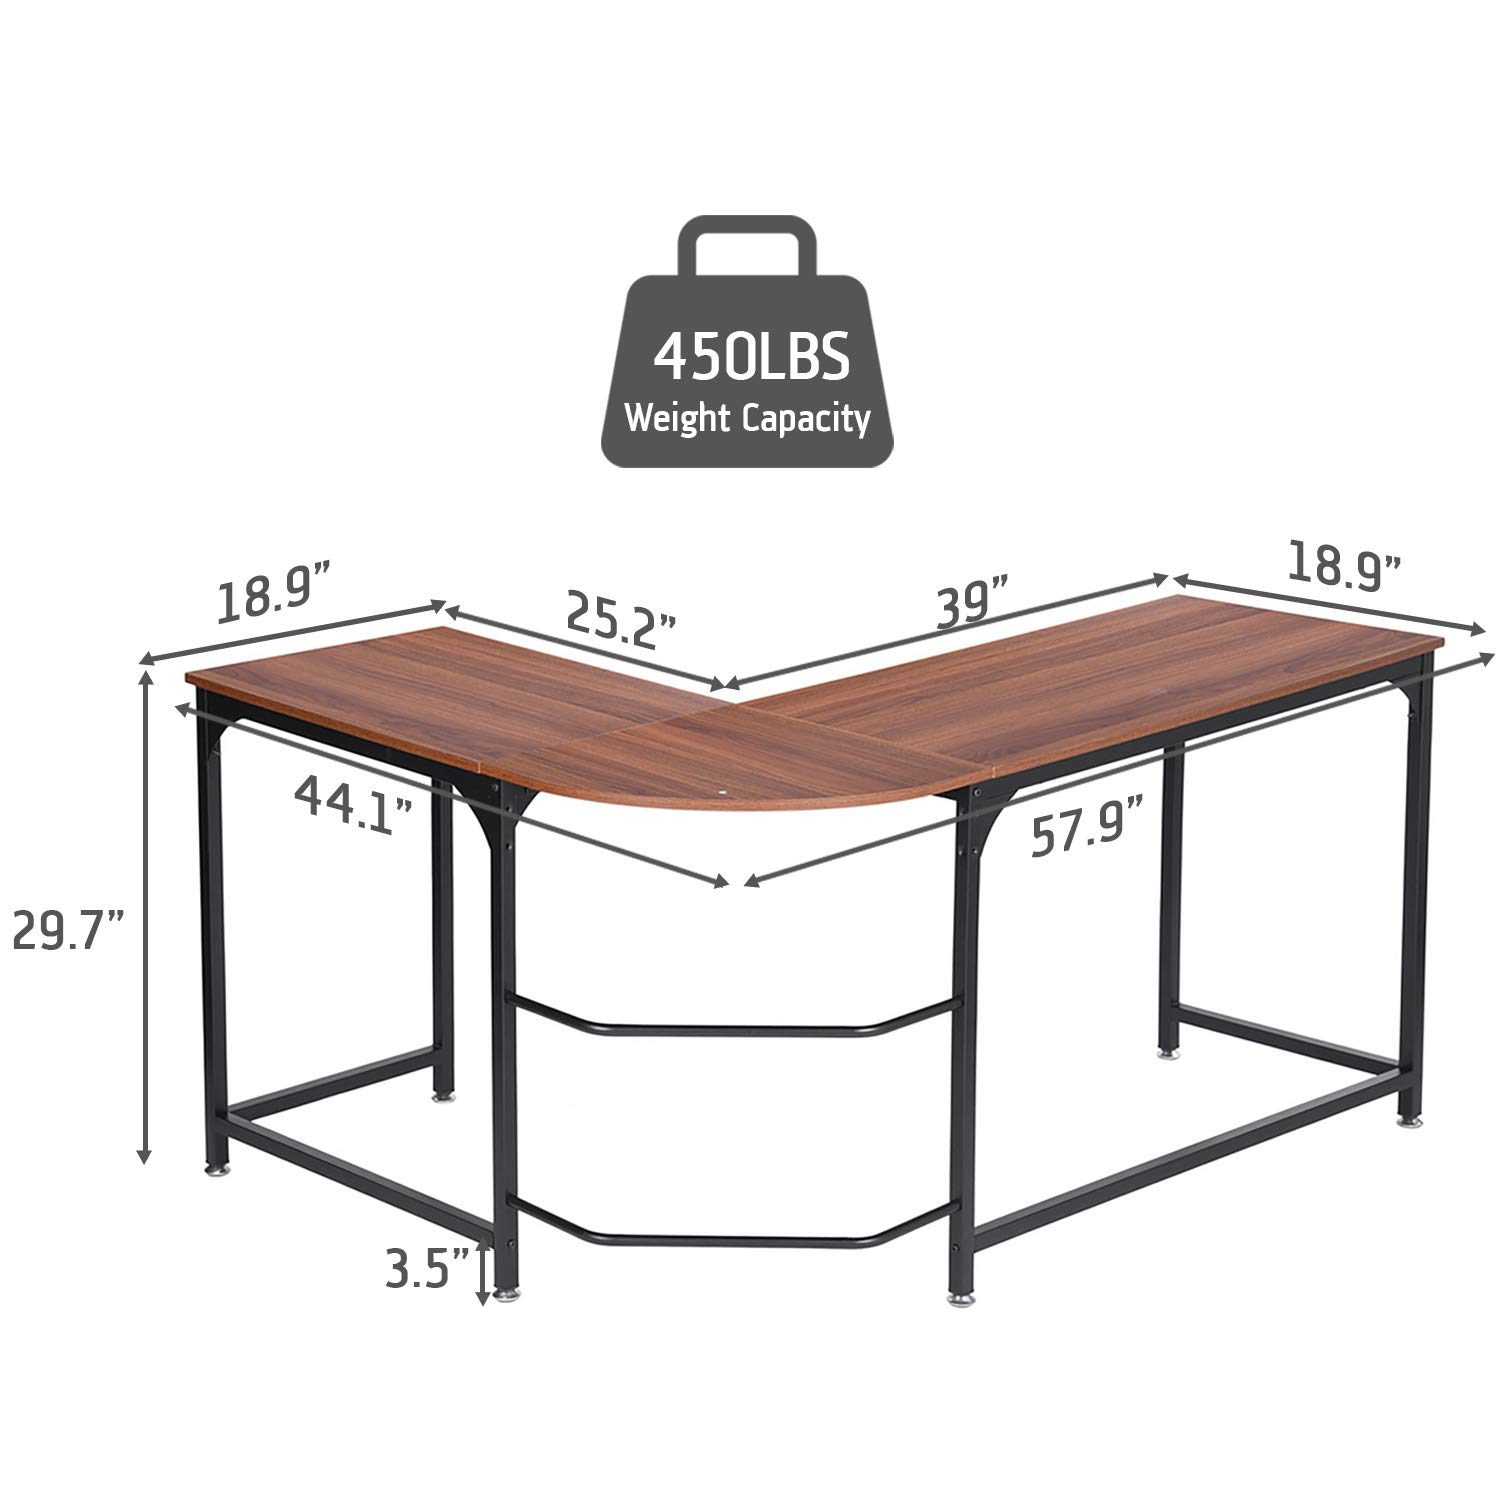 SimLife Reversible L-Shaped Corner Computer Desk Standard PC Laptop Study Table Smooth Desktop Modern Home Office Workstation by SimLife (Image #2)